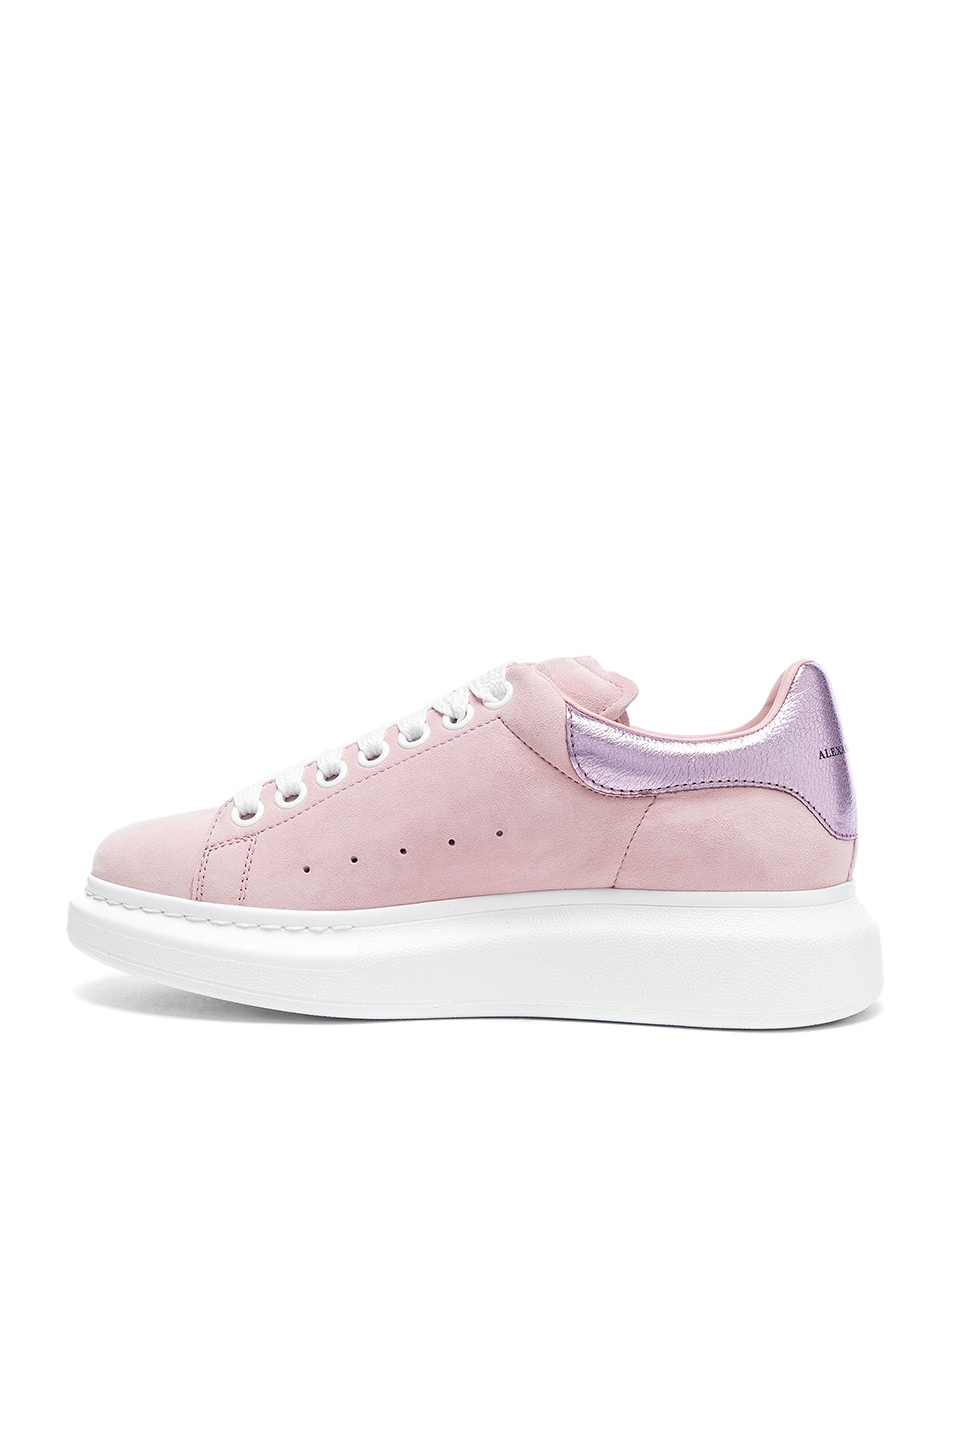 Image 5 of Alexander McQueen Suede Platform Lace Up Sneakers in Clover & Pale Pink